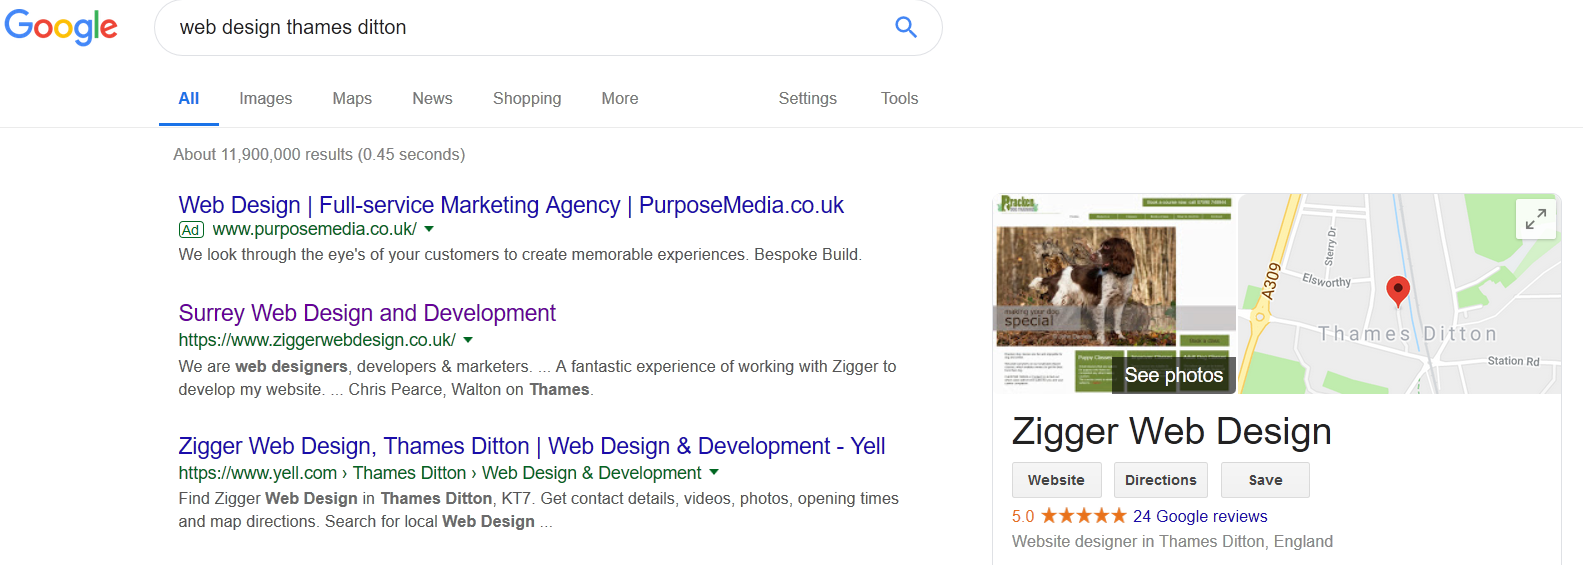 reviews graphic for Zigger Web Design